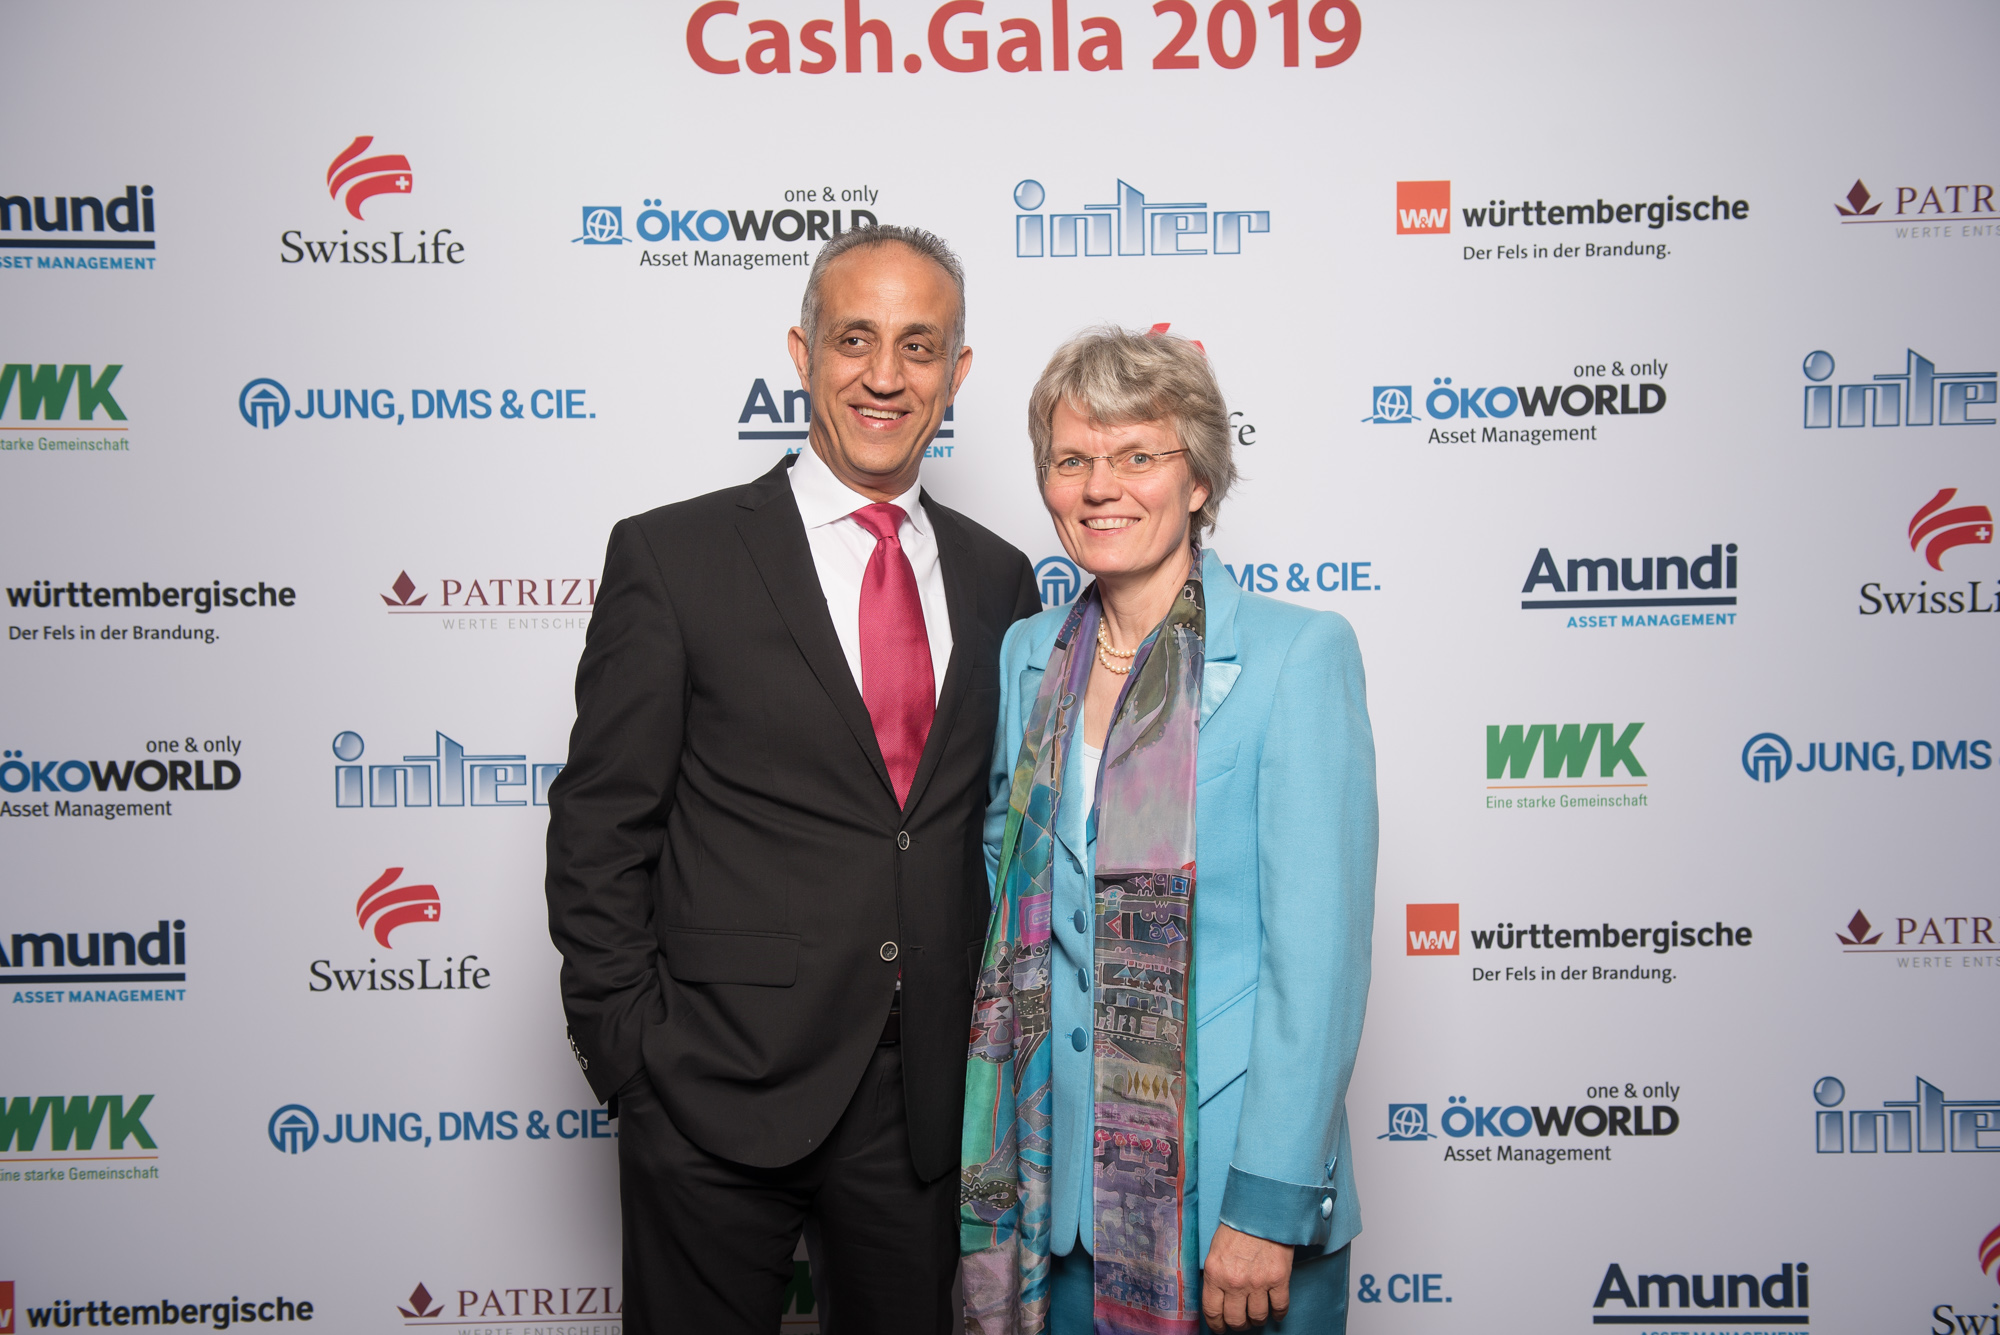 CashGala 2019 0045 AM DSC7073 in Cash.Gala 2019